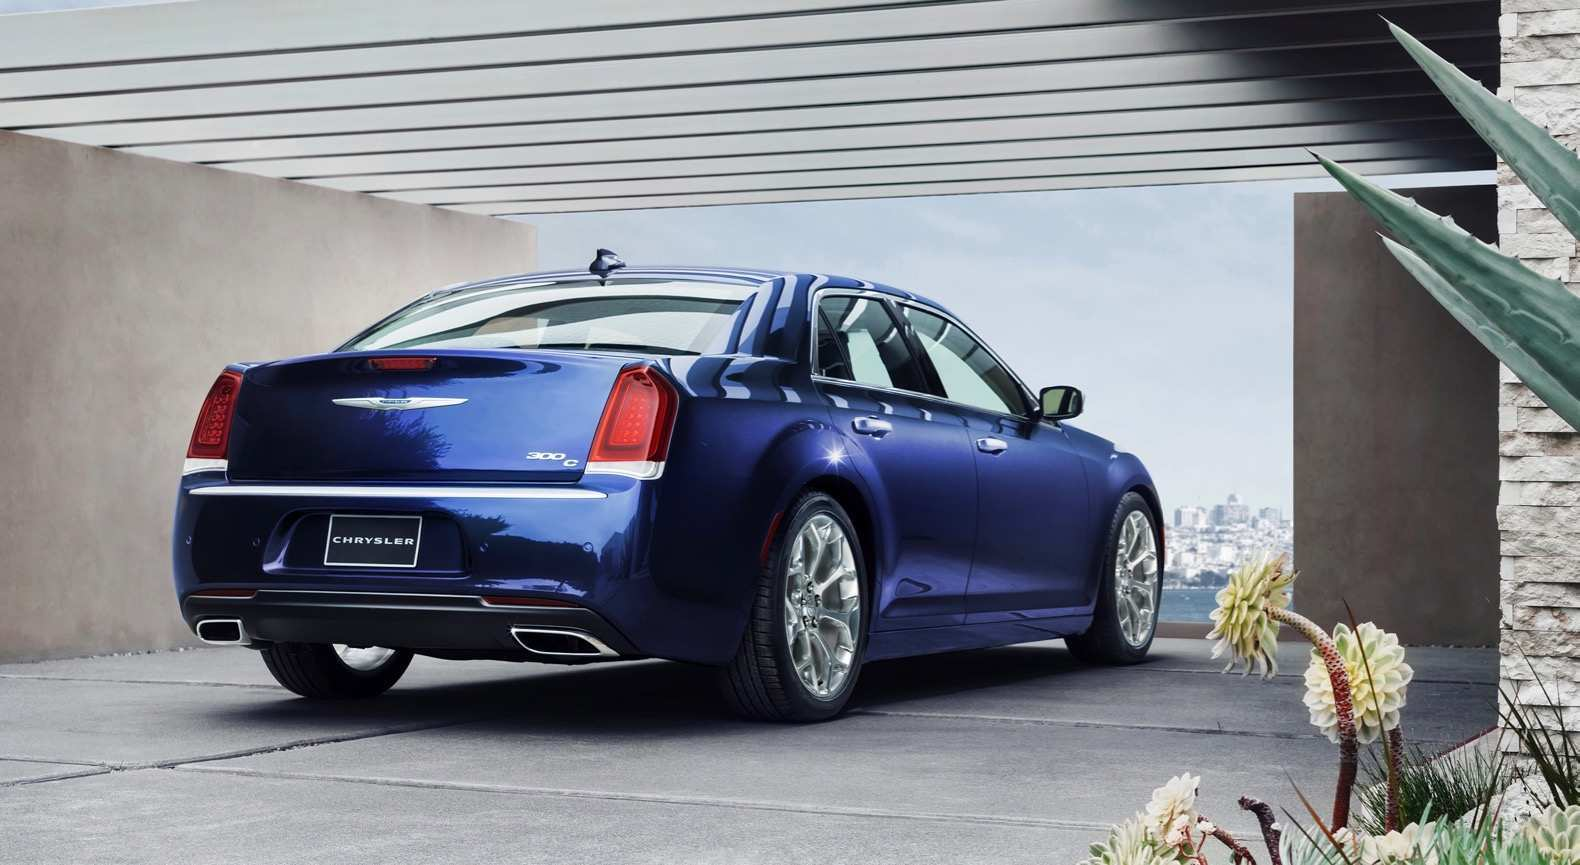 73 Concept of Chrysler 300C 2020 Price and Review with Chrysler 300C 2020